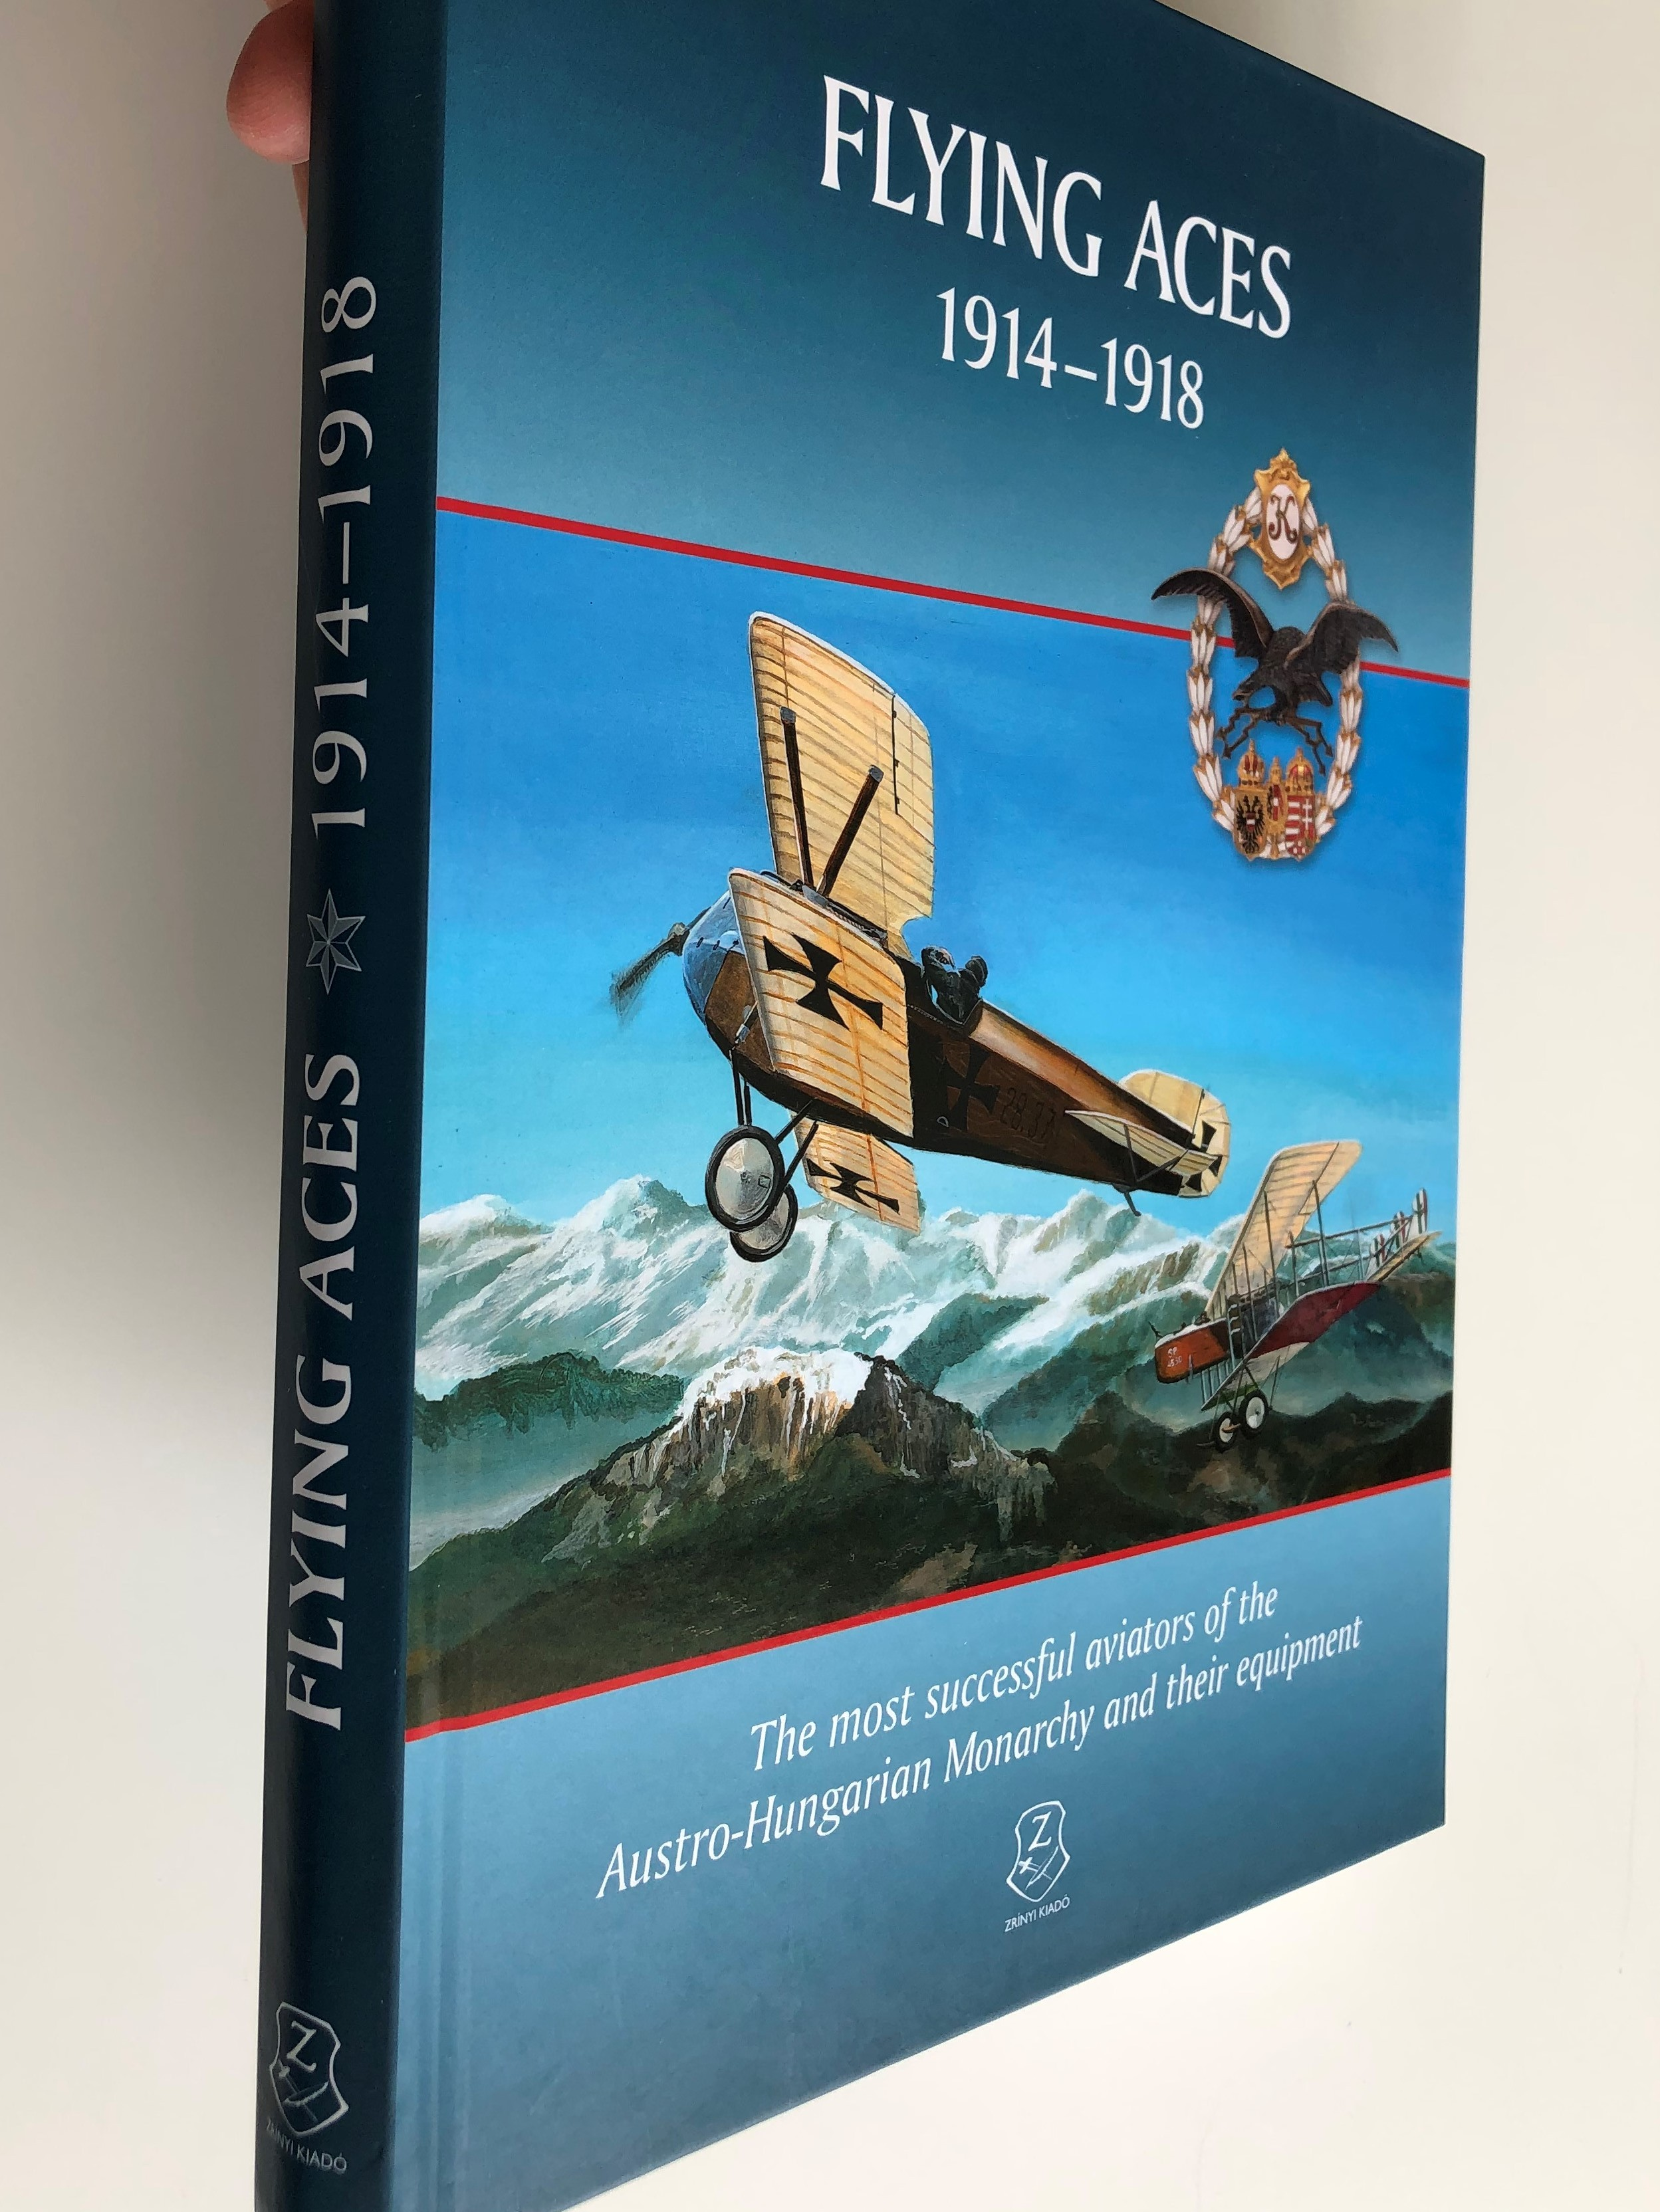 flying-aces-1914-1918-the-most-successful-aviators-of-the-austro-hungarian-monarchy-and-their-equipment-hardcover-2016-hm-zr-nyi-kiad-2-.jpg